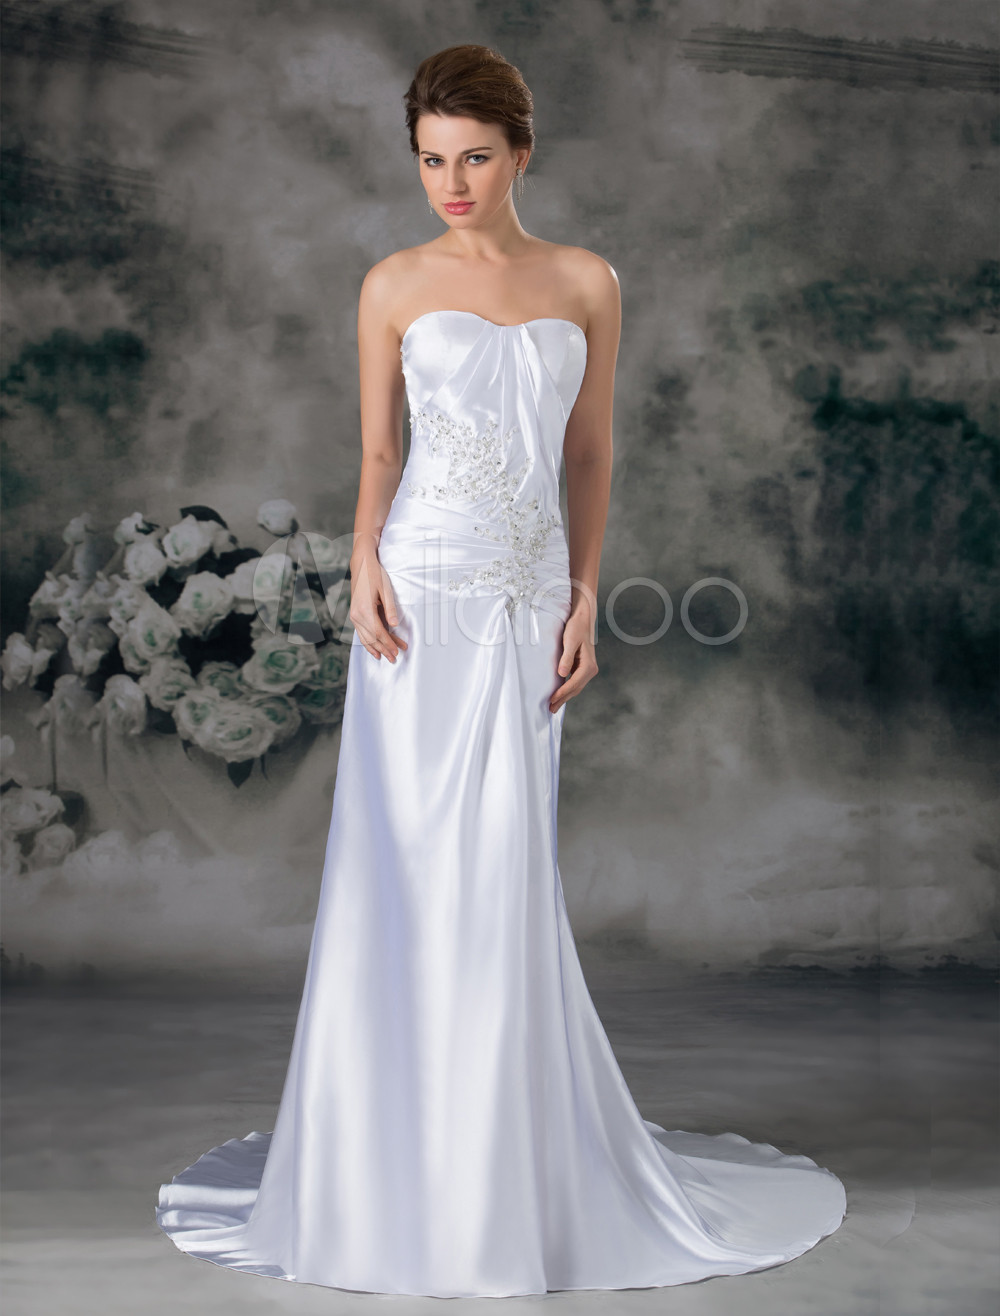 Chapel Train White Ruched Sheath Wedding Dress with Sweetheart Neck